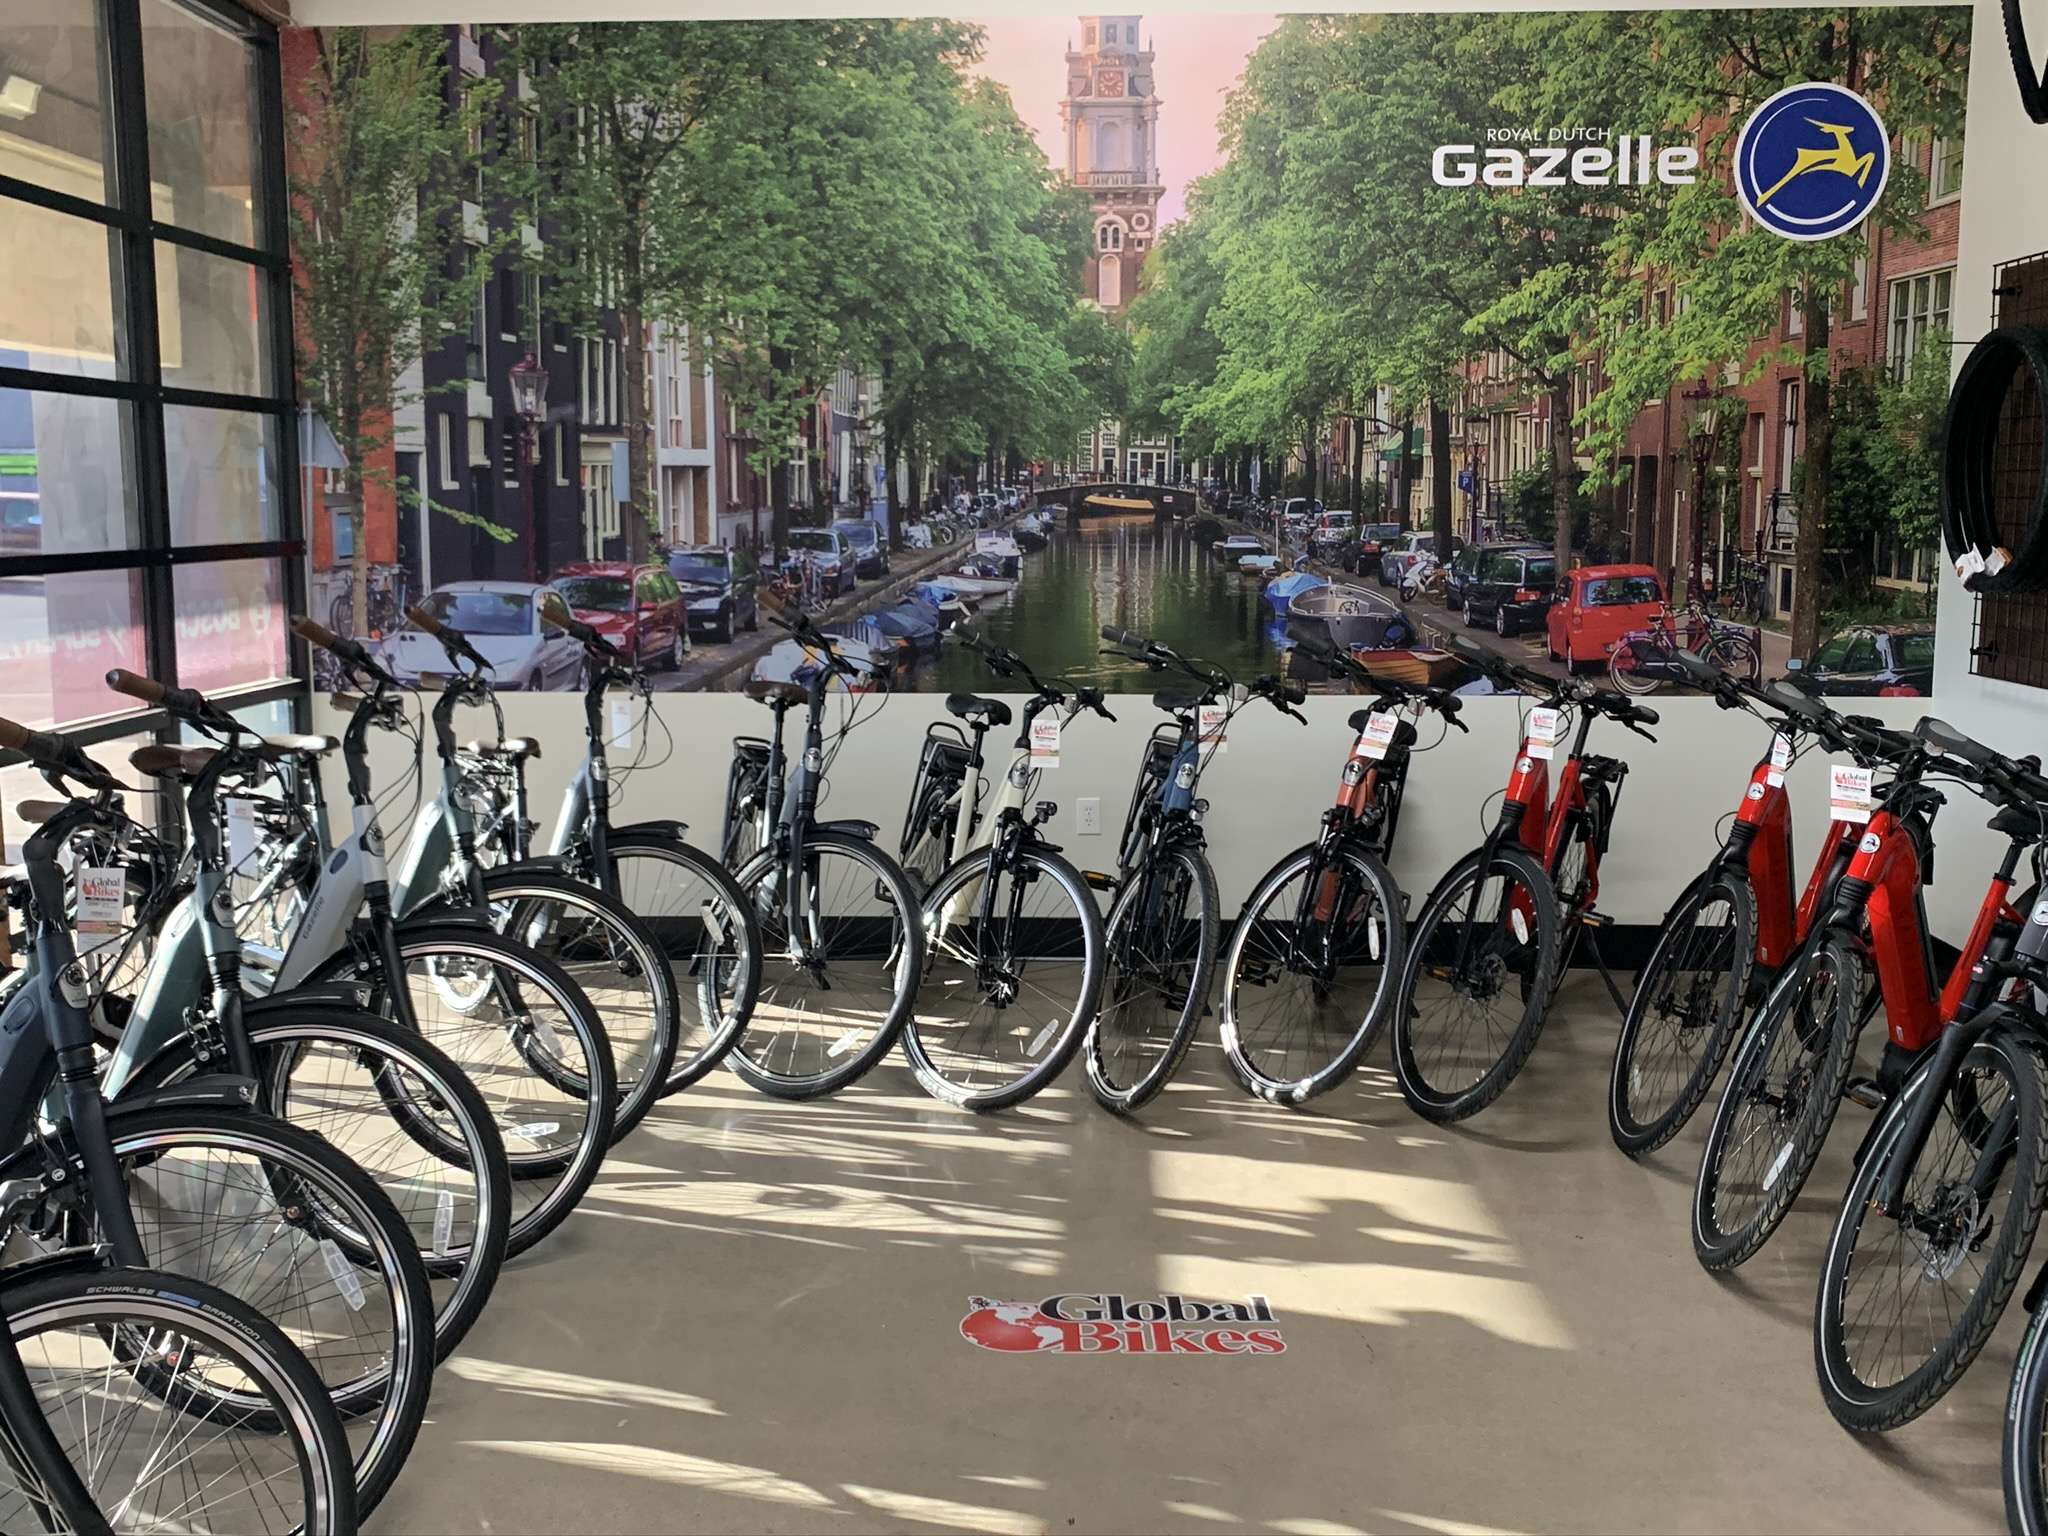 Arizona Gazelle Electric Bike Dealers near me